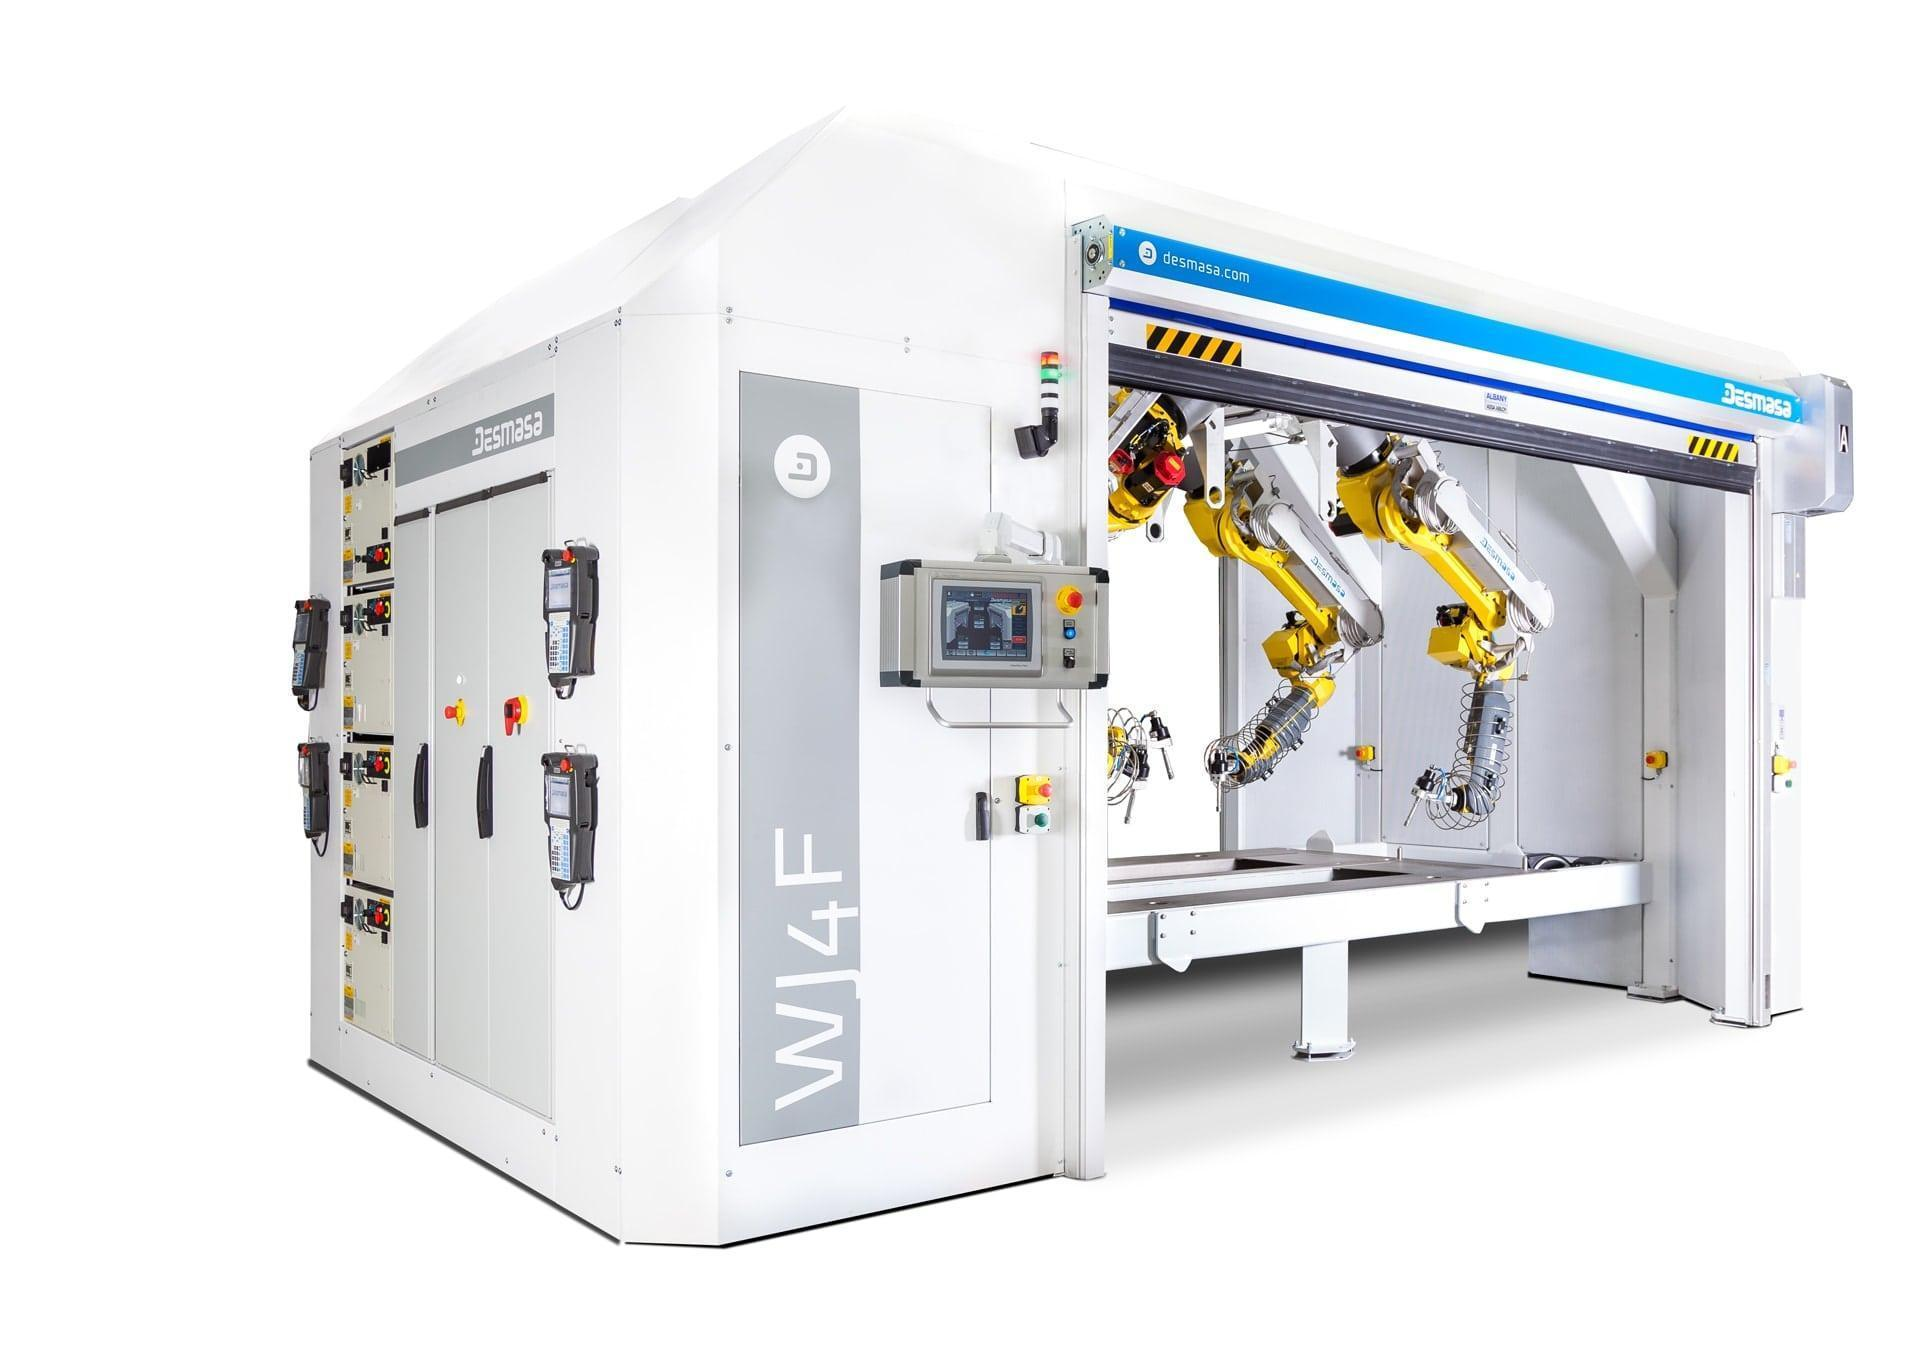 Control system of robotized waterjet cutting cell